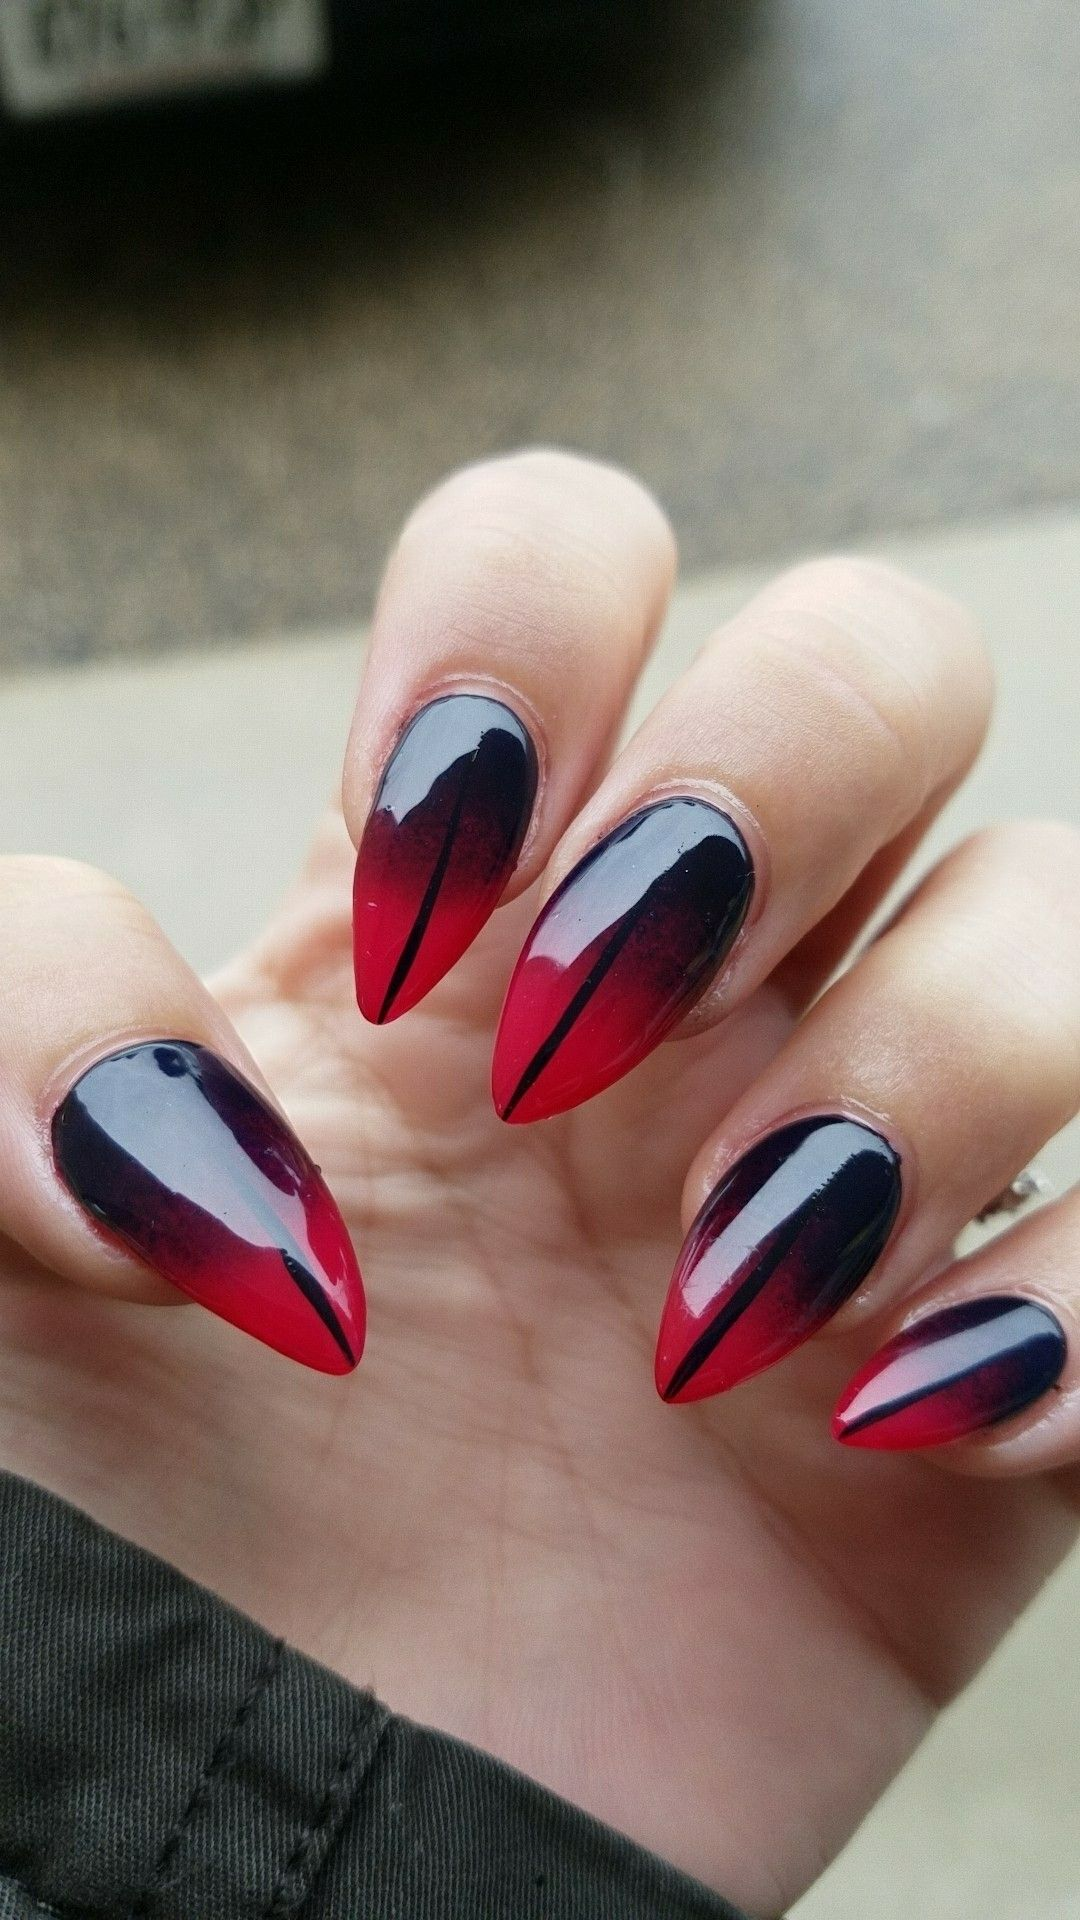 Ombre red and black nail design | Nail design | Pinterest ...